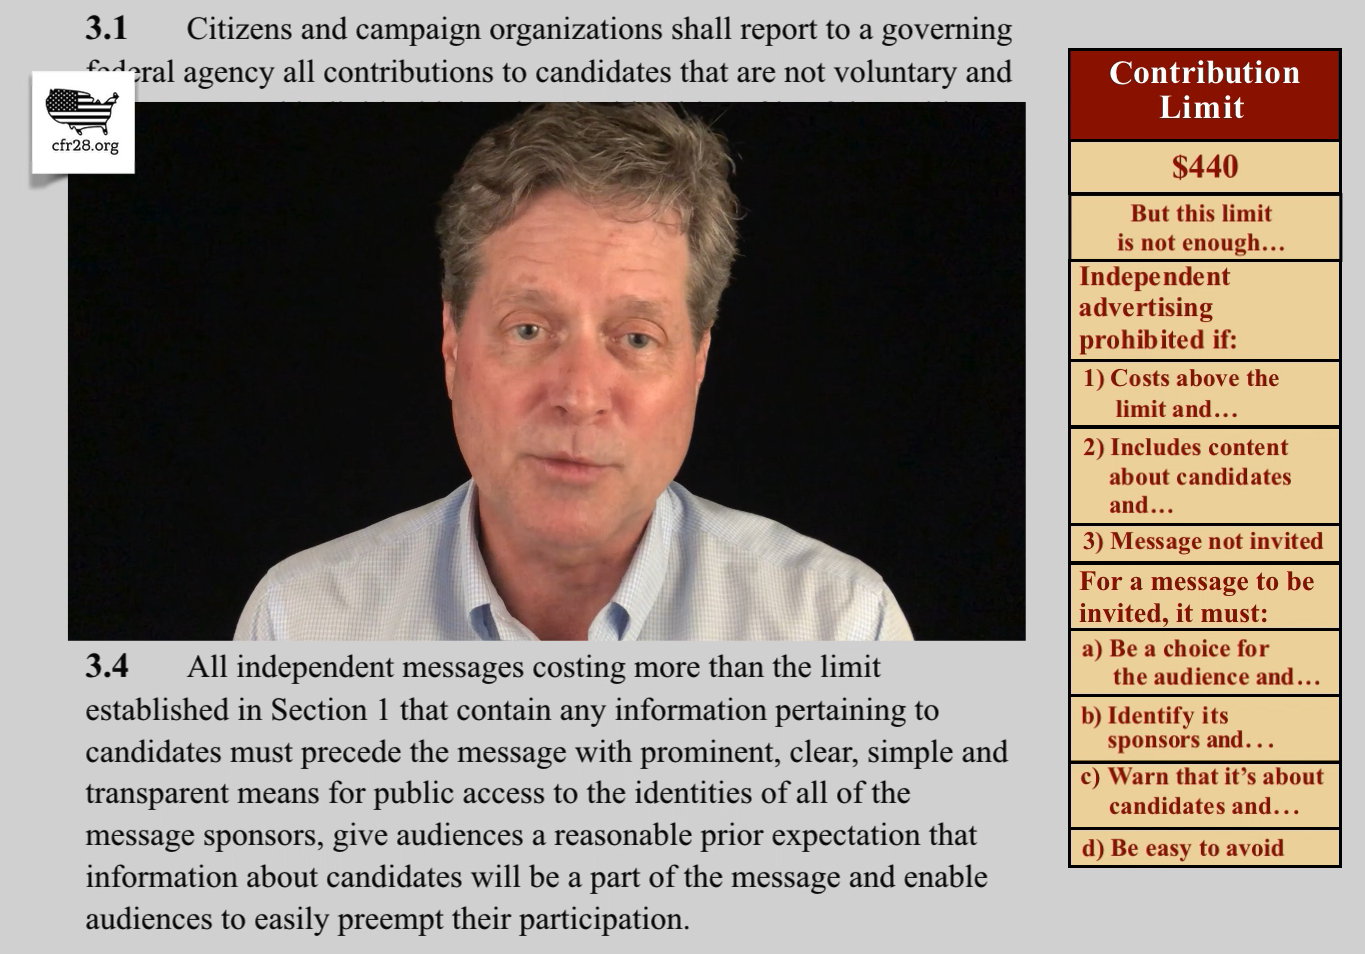 4:35 Second of four videos describes how CFR28 eliminates superPAC advertising